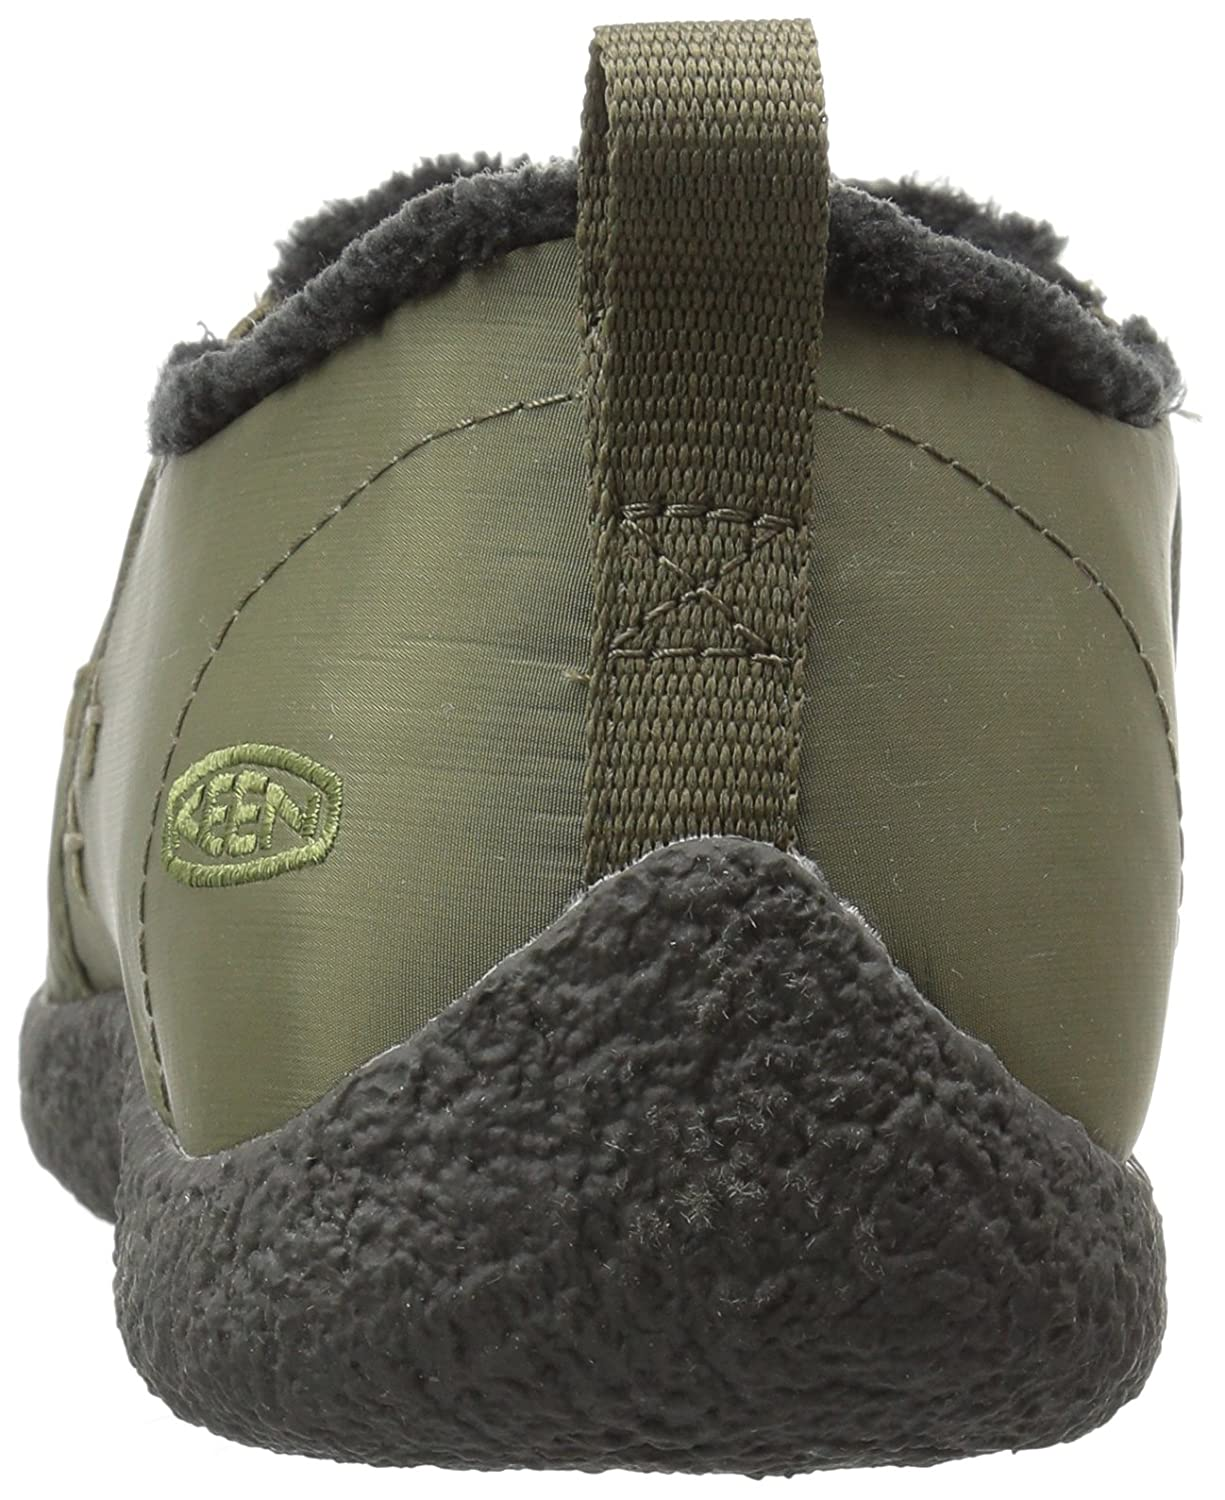 a501e5c29de4c2 Keen Men s Howser Wool Slipper  Amazon.de  Schuhe   Handtaschen